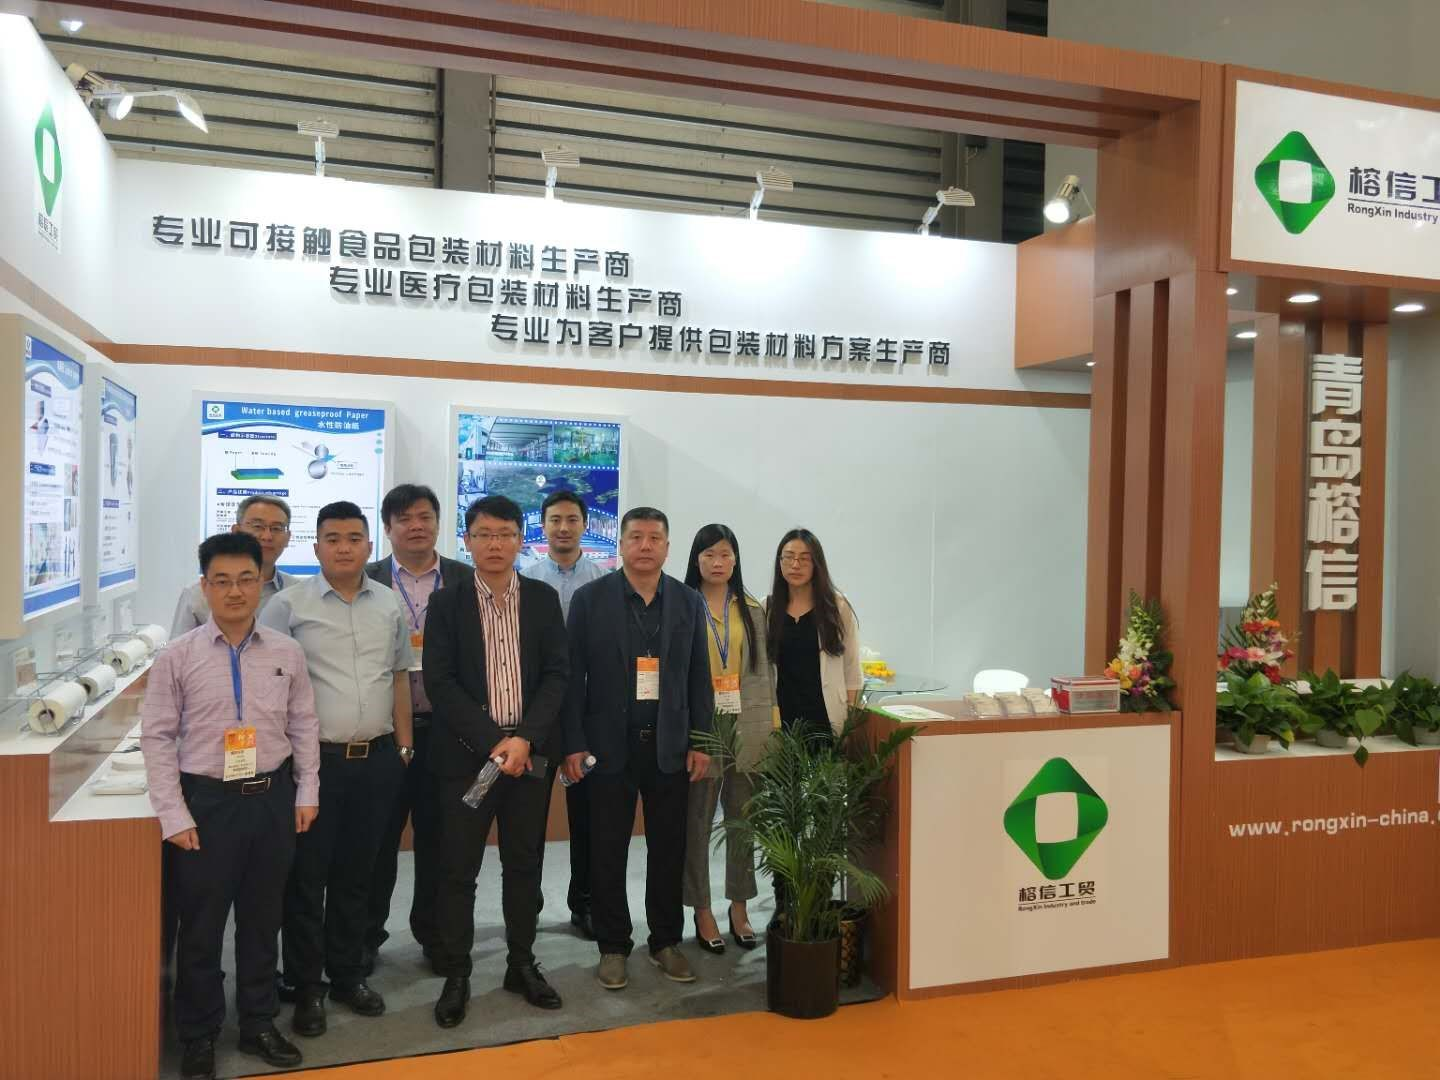 Rongxin participated in the China packaging container exhibition located in Shanghai new international expo center